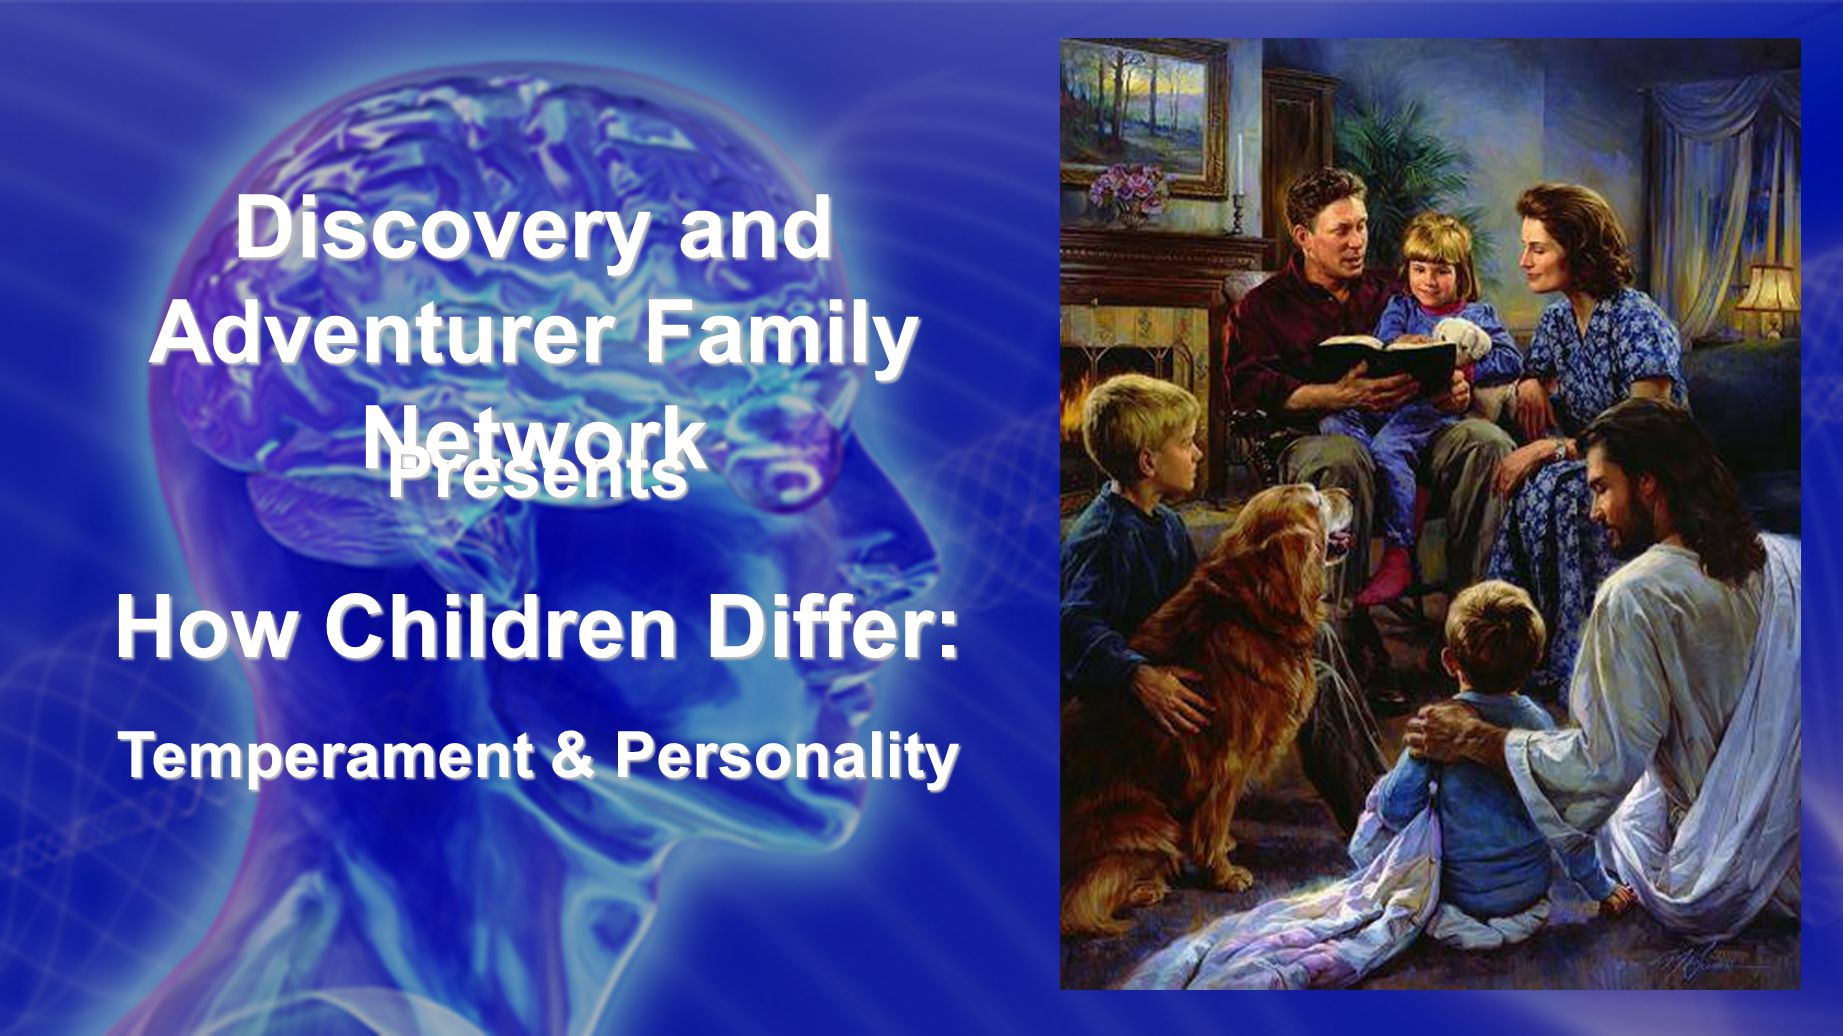 Discovery and Adventurer Family Network Presents How Children Differ: Temperament & Personality